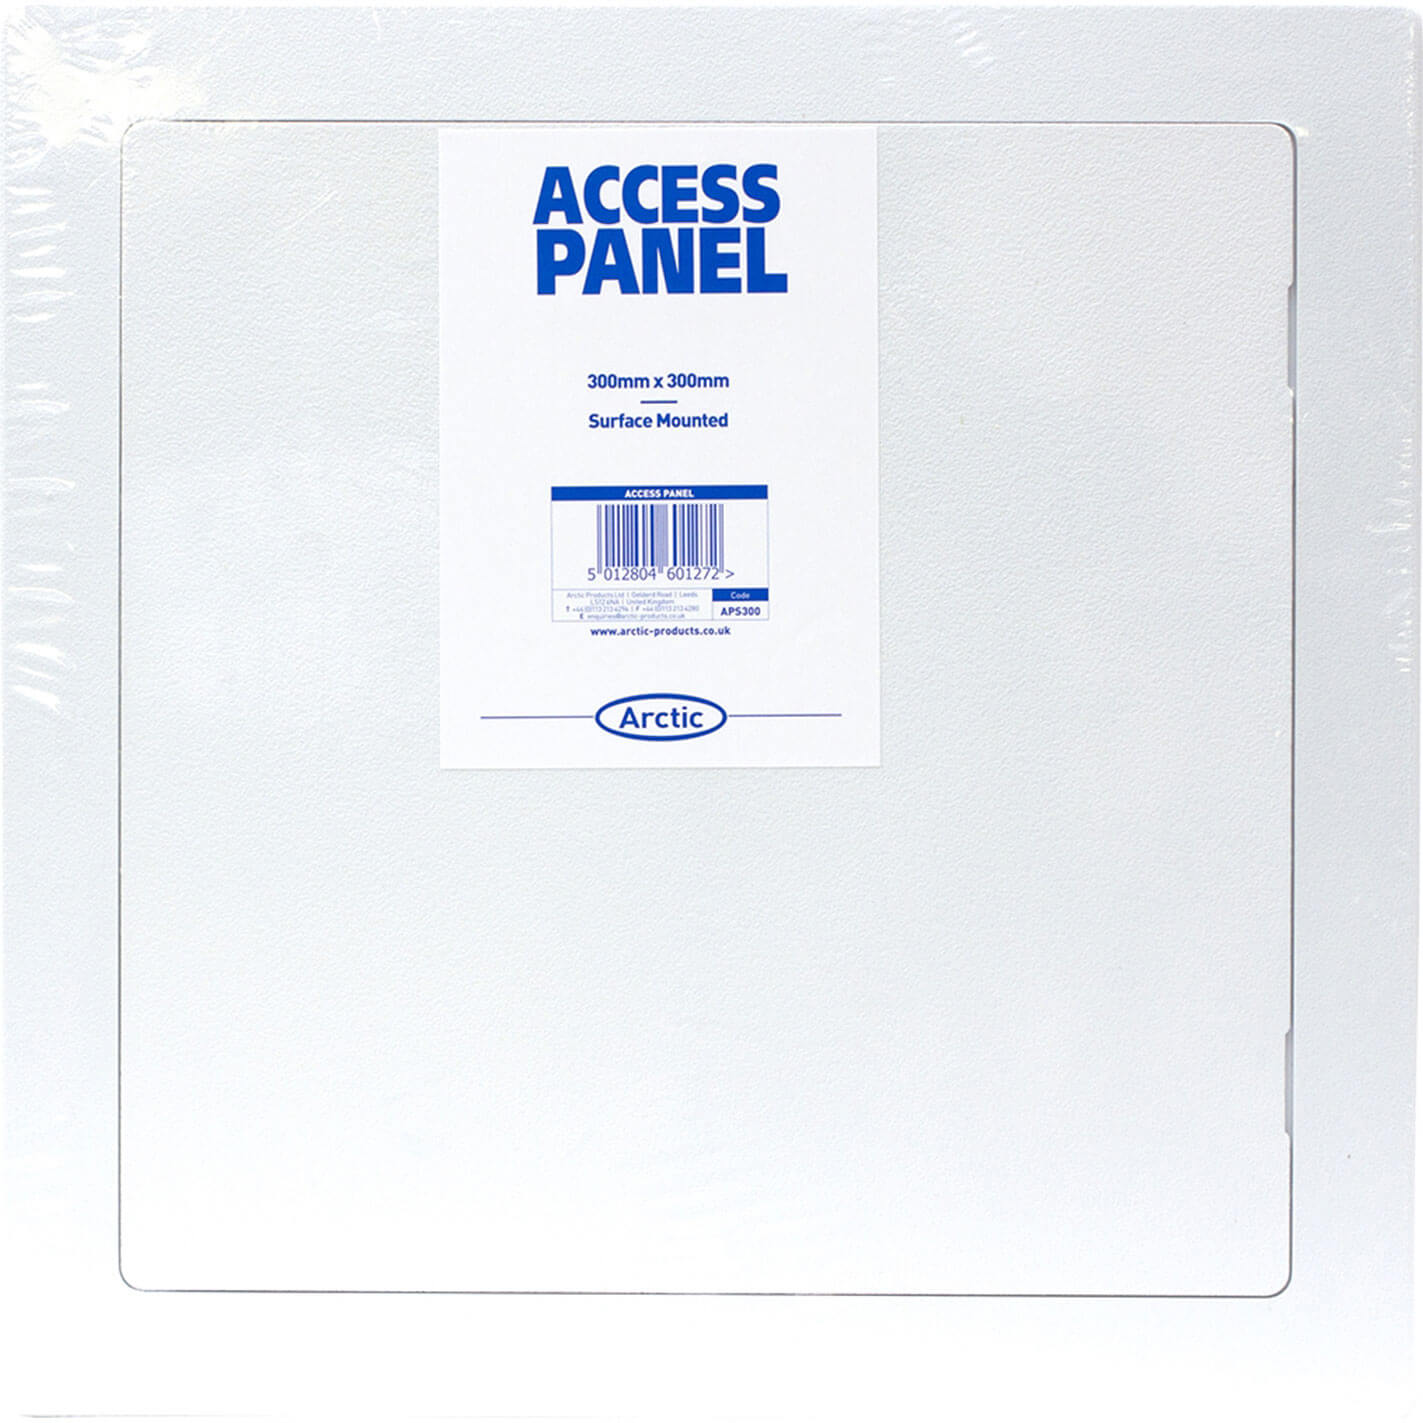 Image of Arctic Hayes Access Panel 300mm 300mm